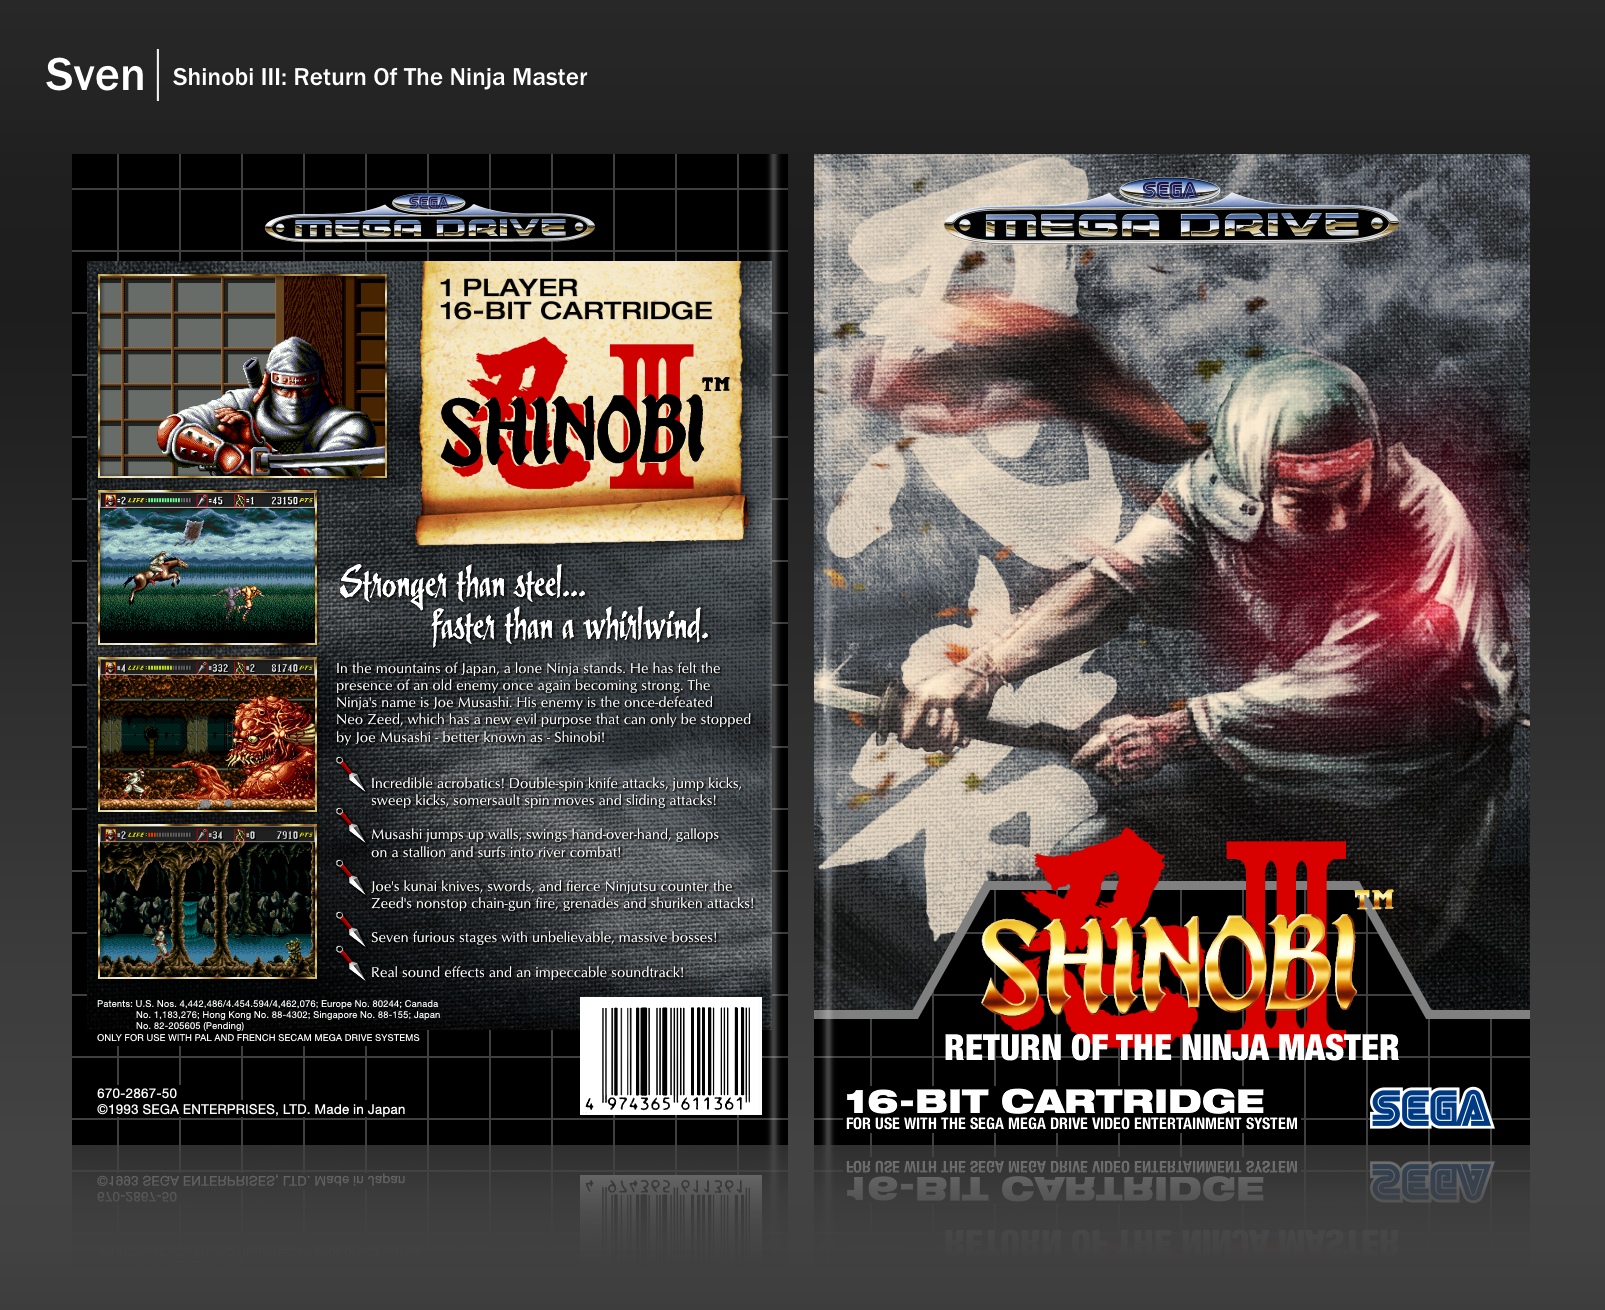 Shinobi III: Return of the Ninja Master box cover